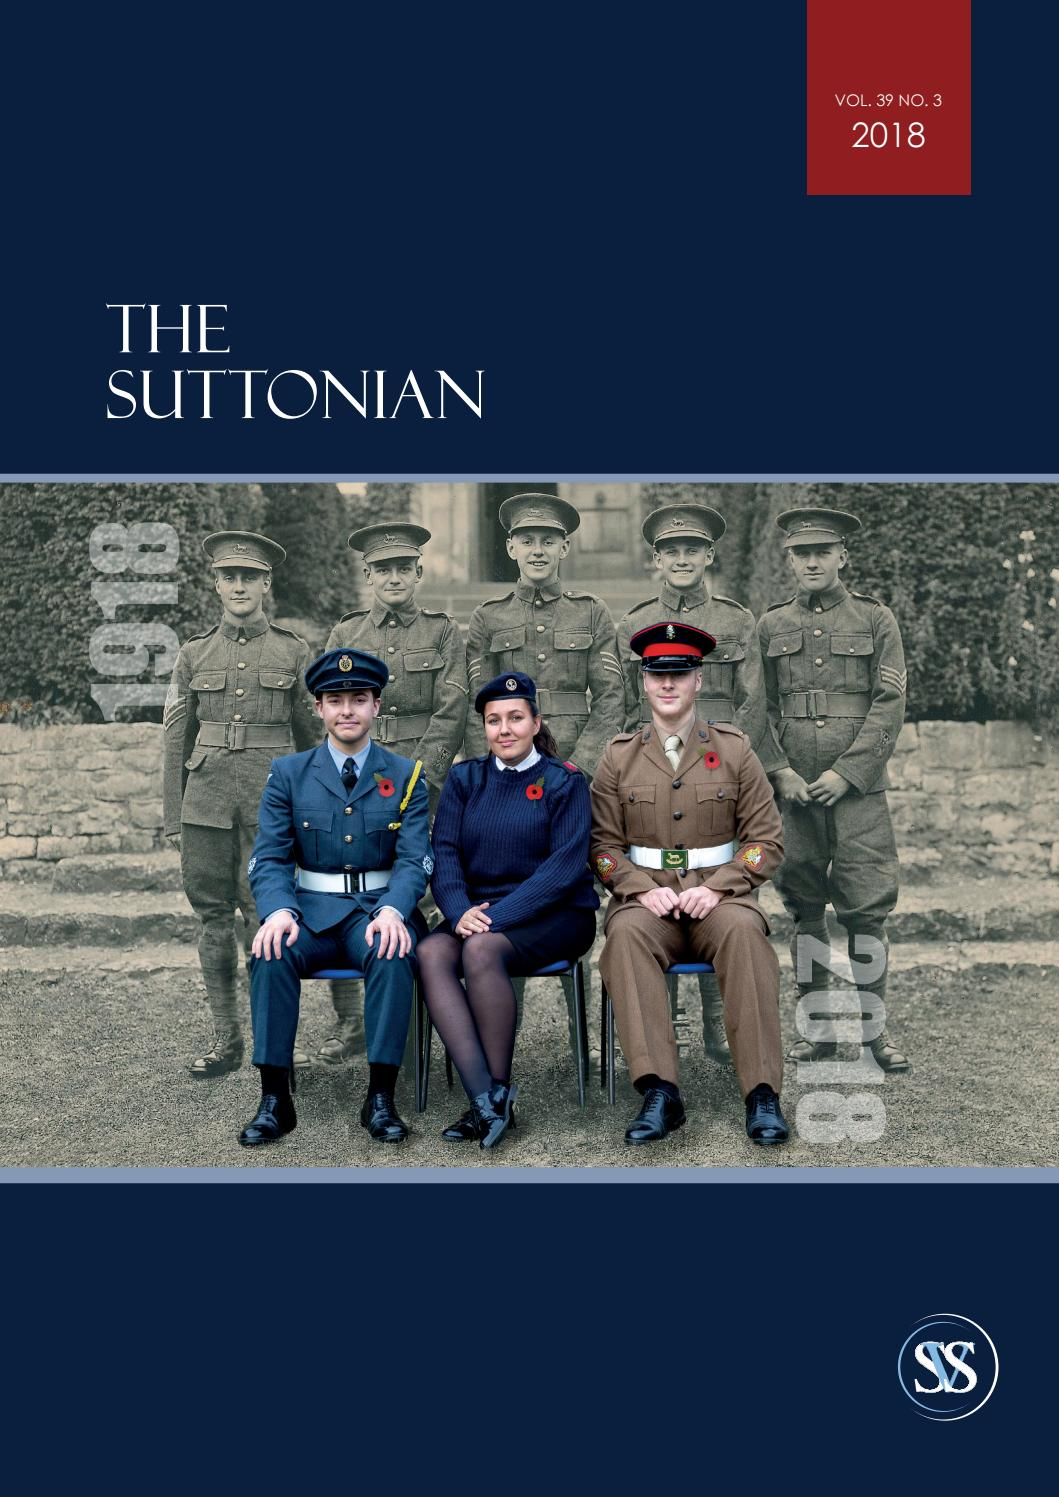 ce4114c585da62 The Suttonian 2018 by Sutton Valence School - issuu